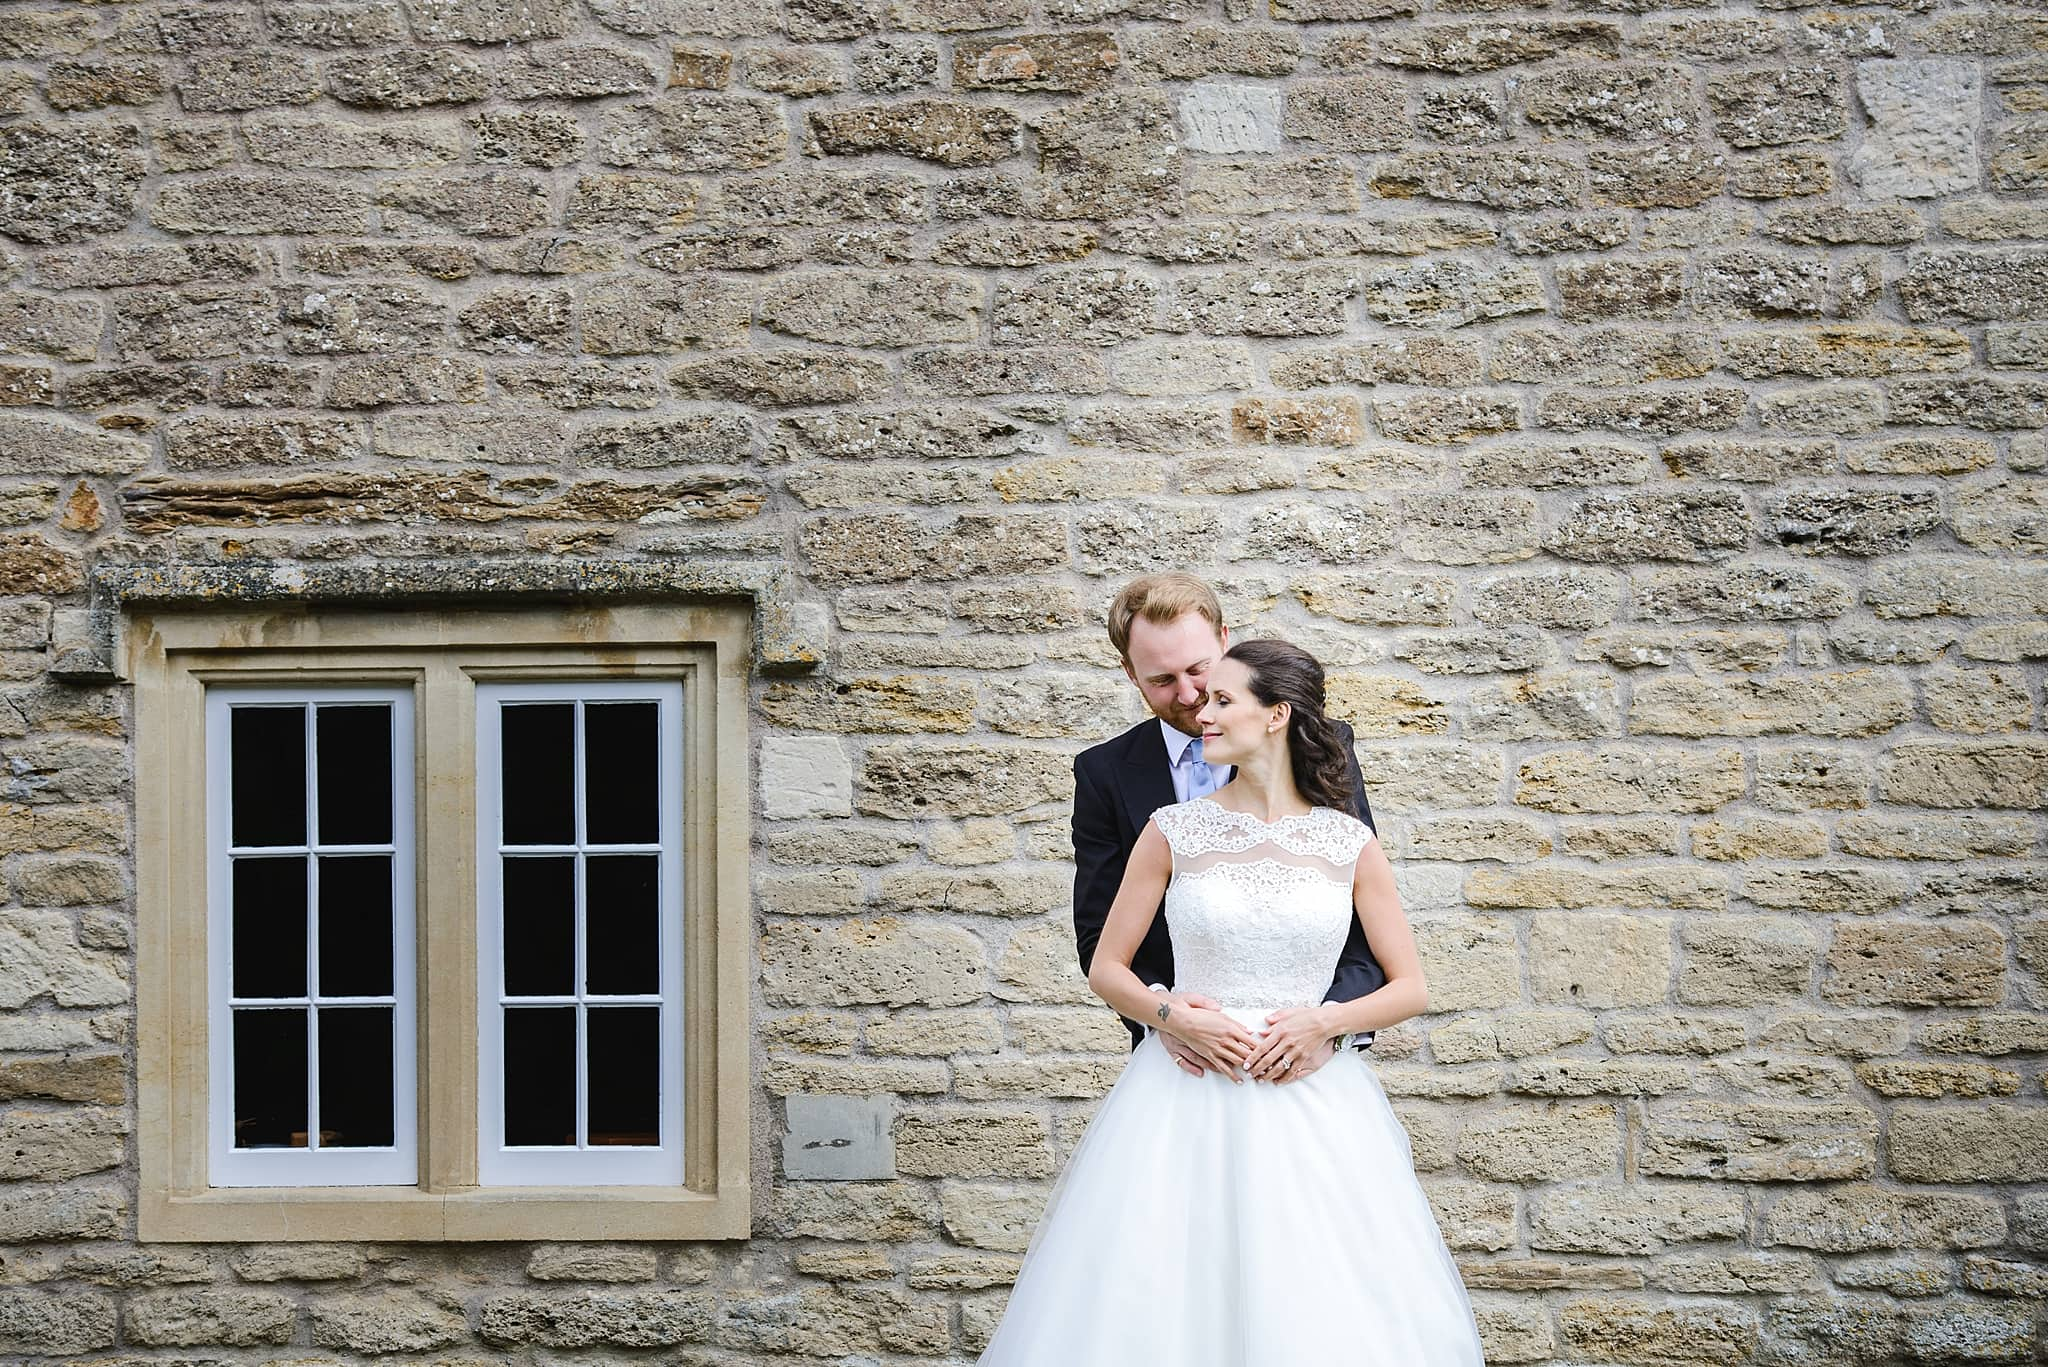 Bride and groom embrace each other in front of a brick wall and window outside Wick Farm